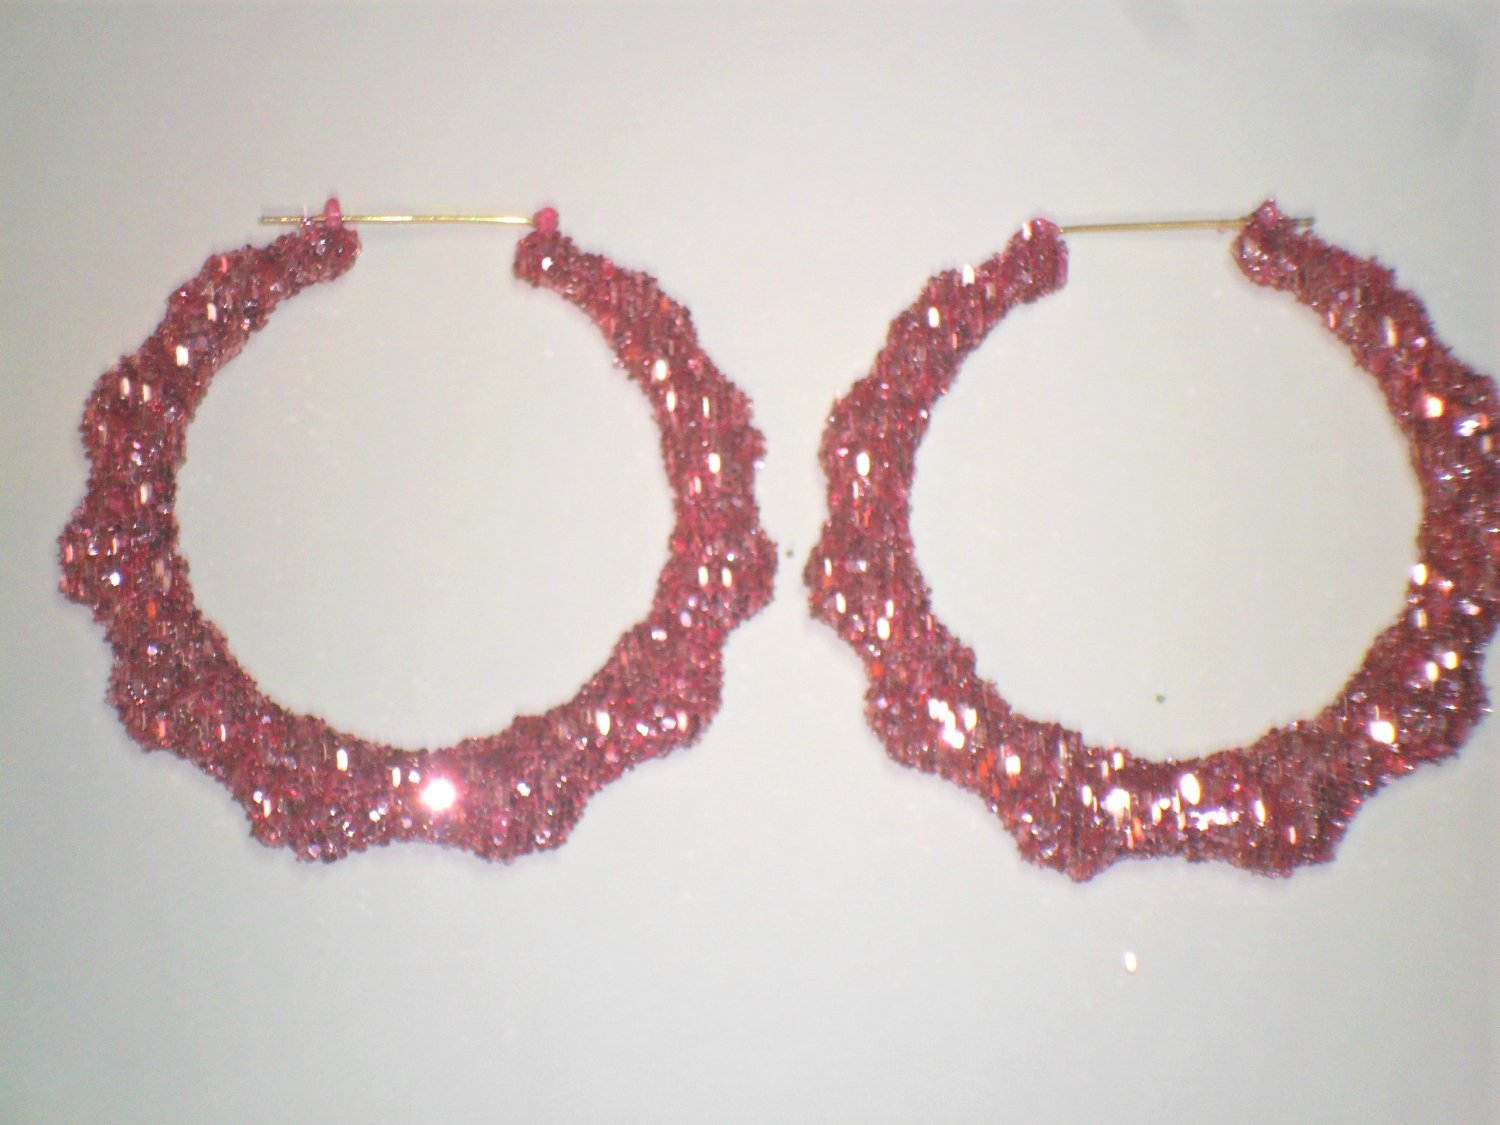 Bamboo Hoop Bling Bling Earrings Pink Buy 1 Get 1 Free Mix or MatchFrom TheiLLLines